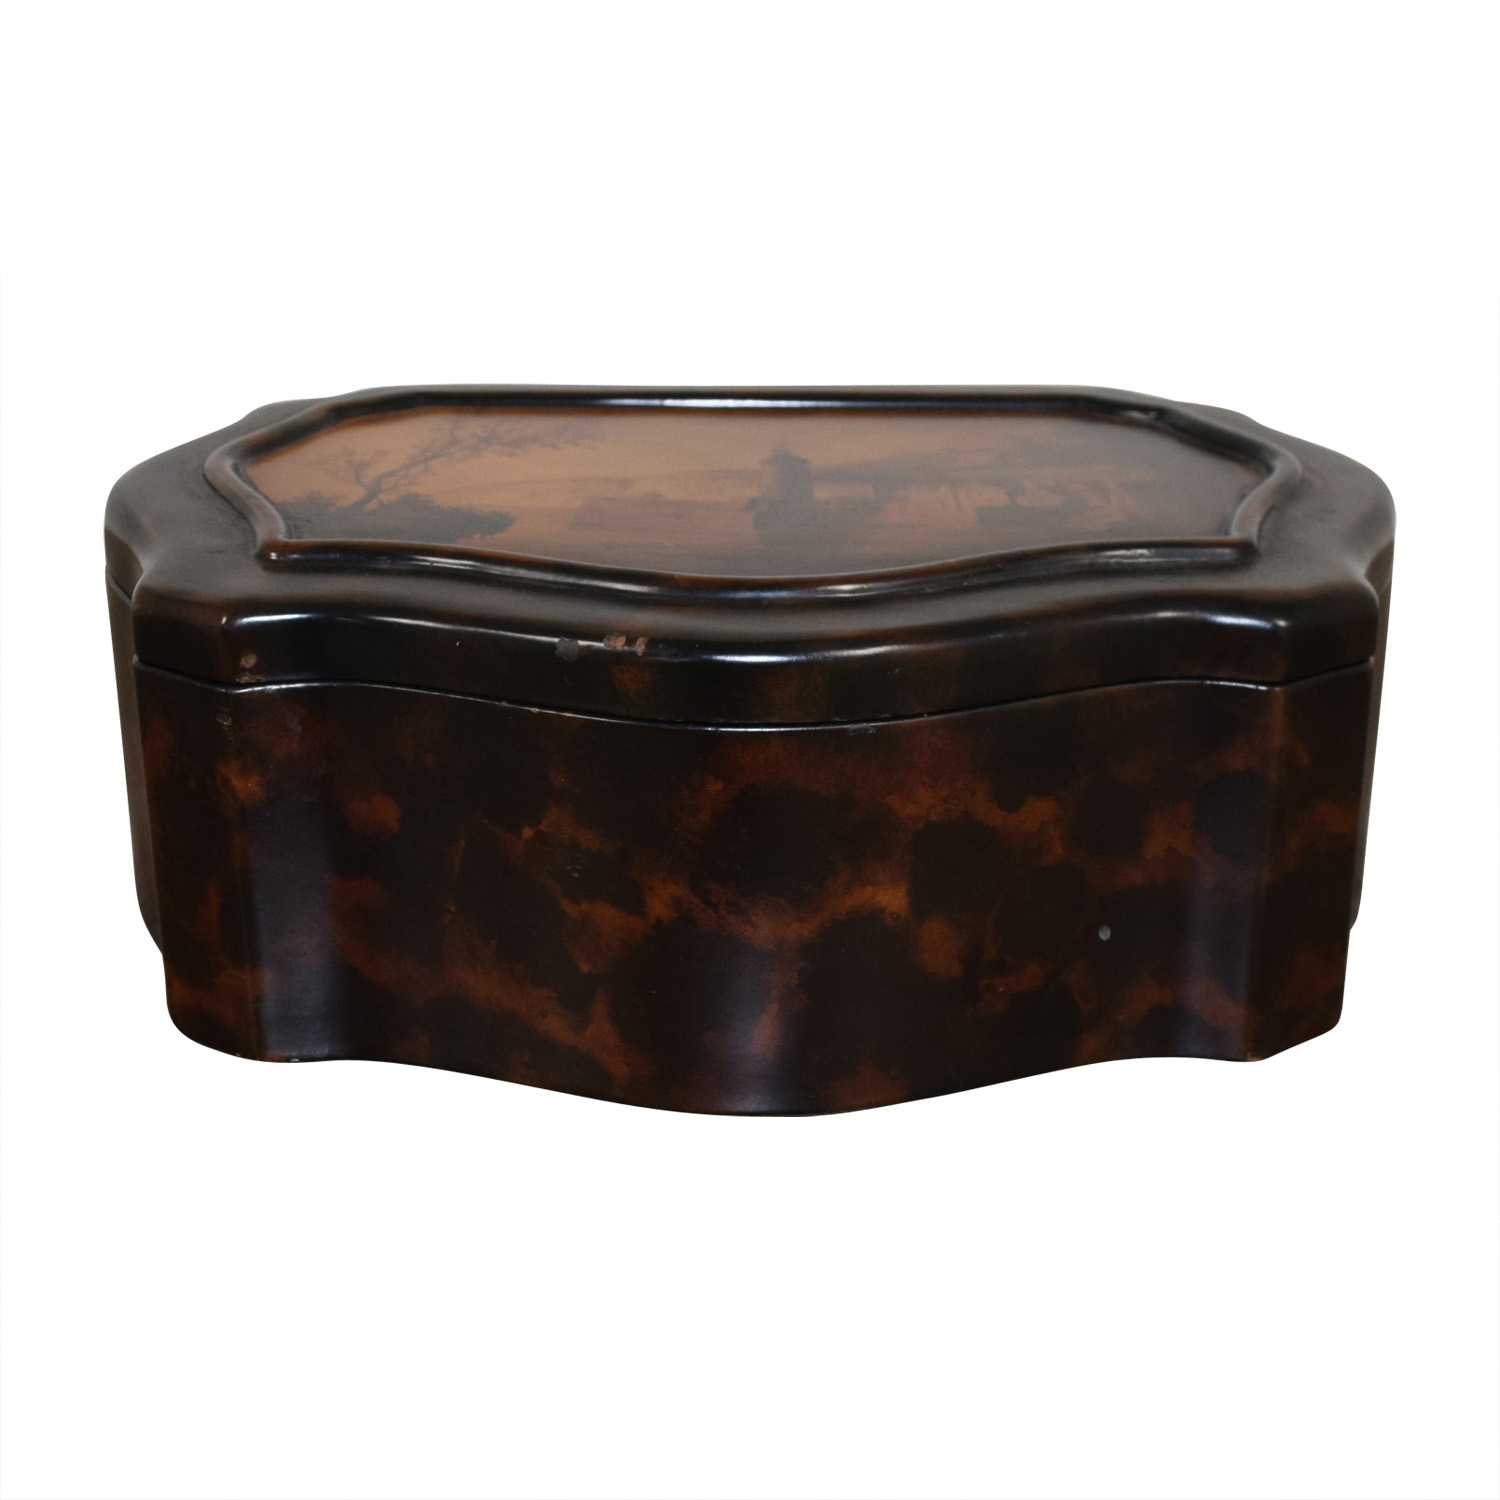 Vintage Wooden Accent Box Decorative Accents